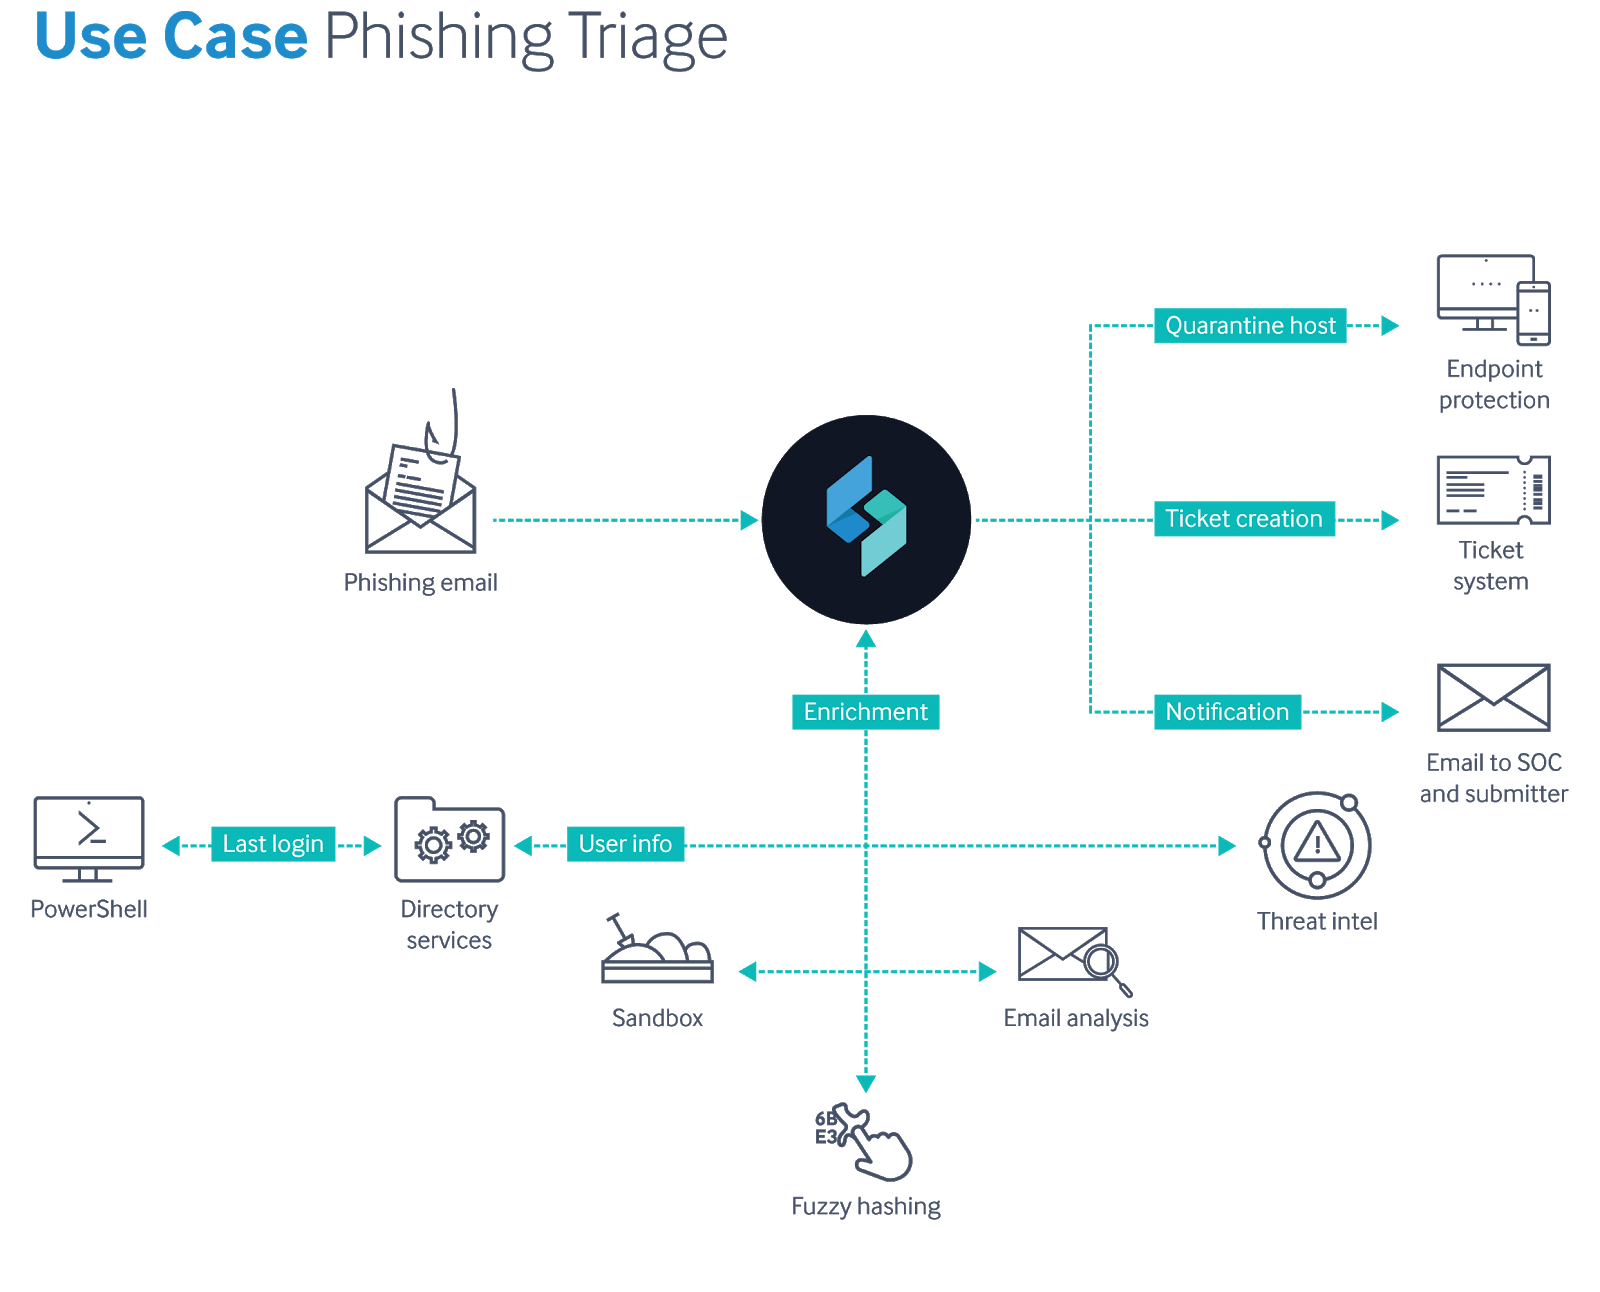 Your First SOAR Use Case Phishing Triage